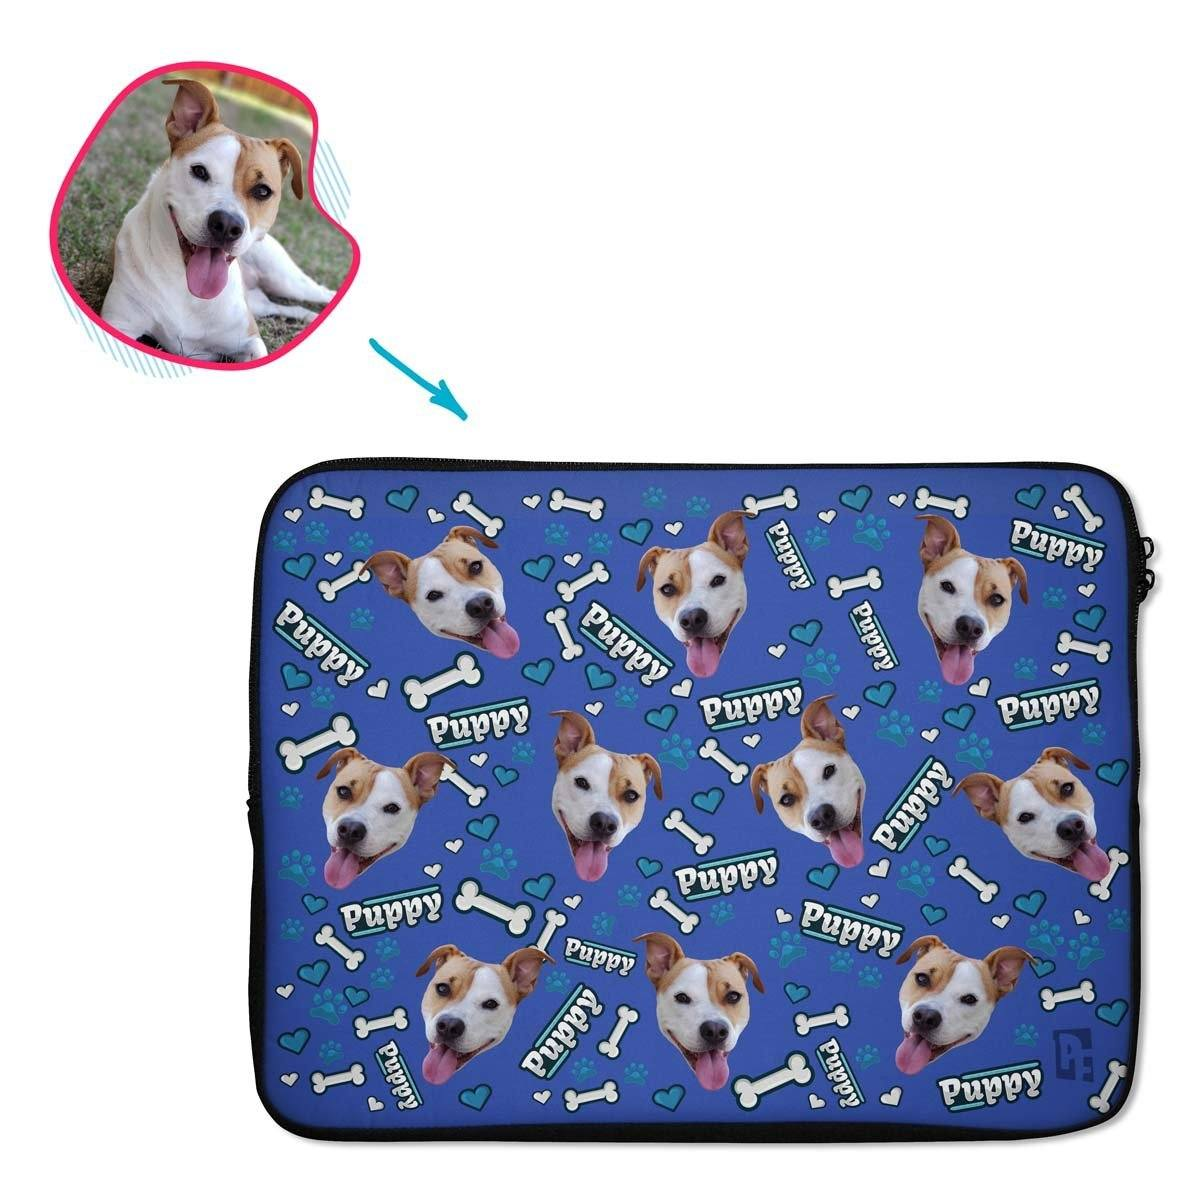 darkblue Puppy laptop sleeve personalized with photo of face printed on them